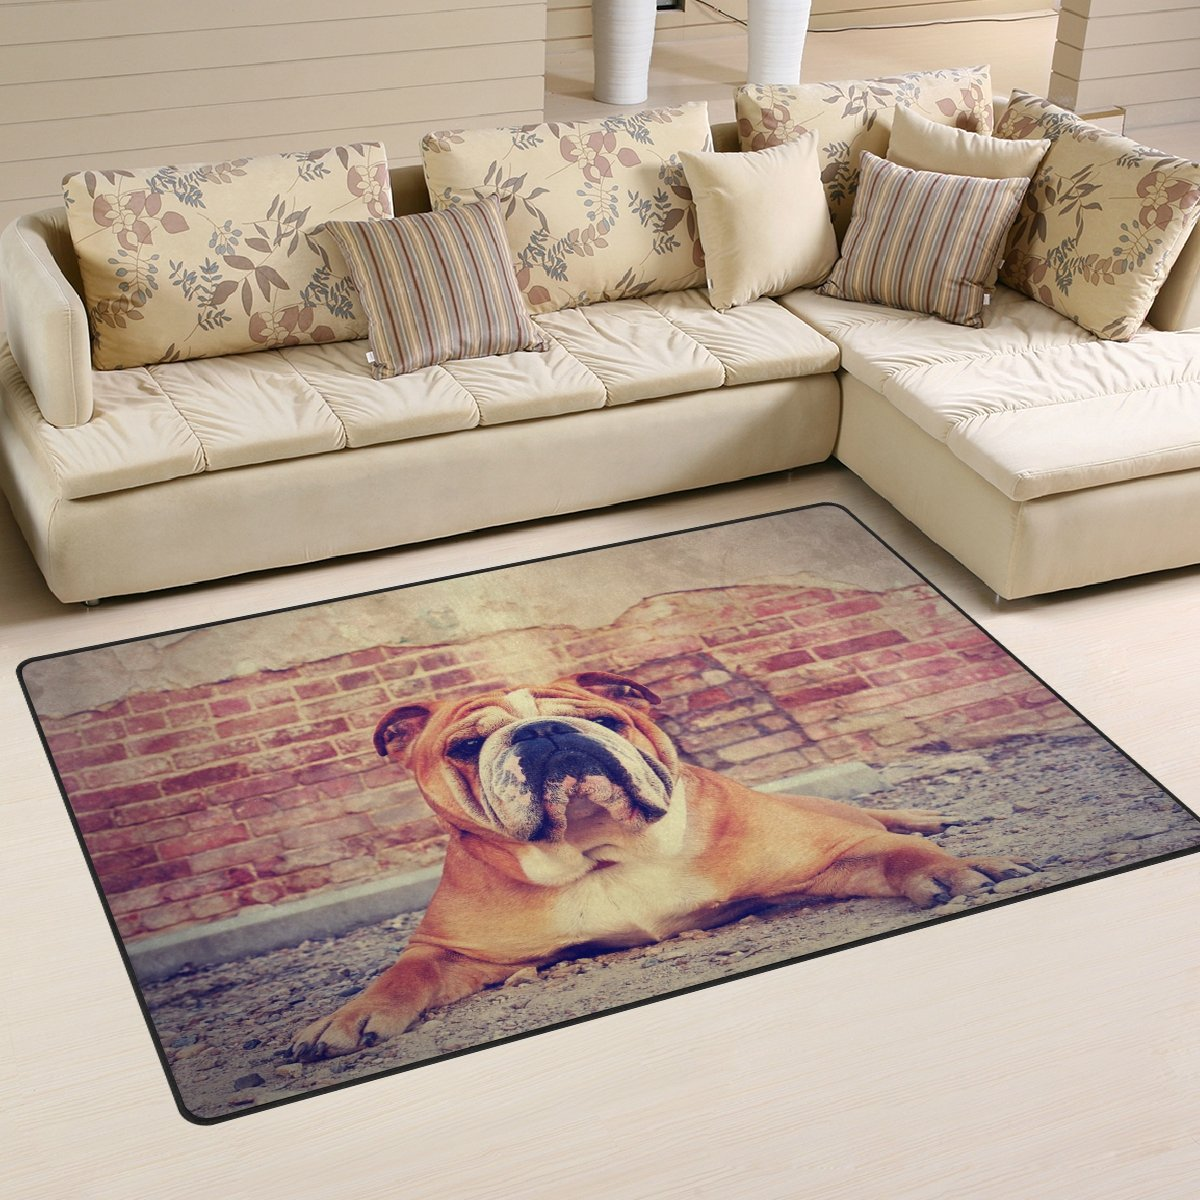 WOZO Bulldog Brick Wall Dog Area Rug Rugs Non-Slip Floor Mat Doormats Living Room Bedroom 60 x 39 inches